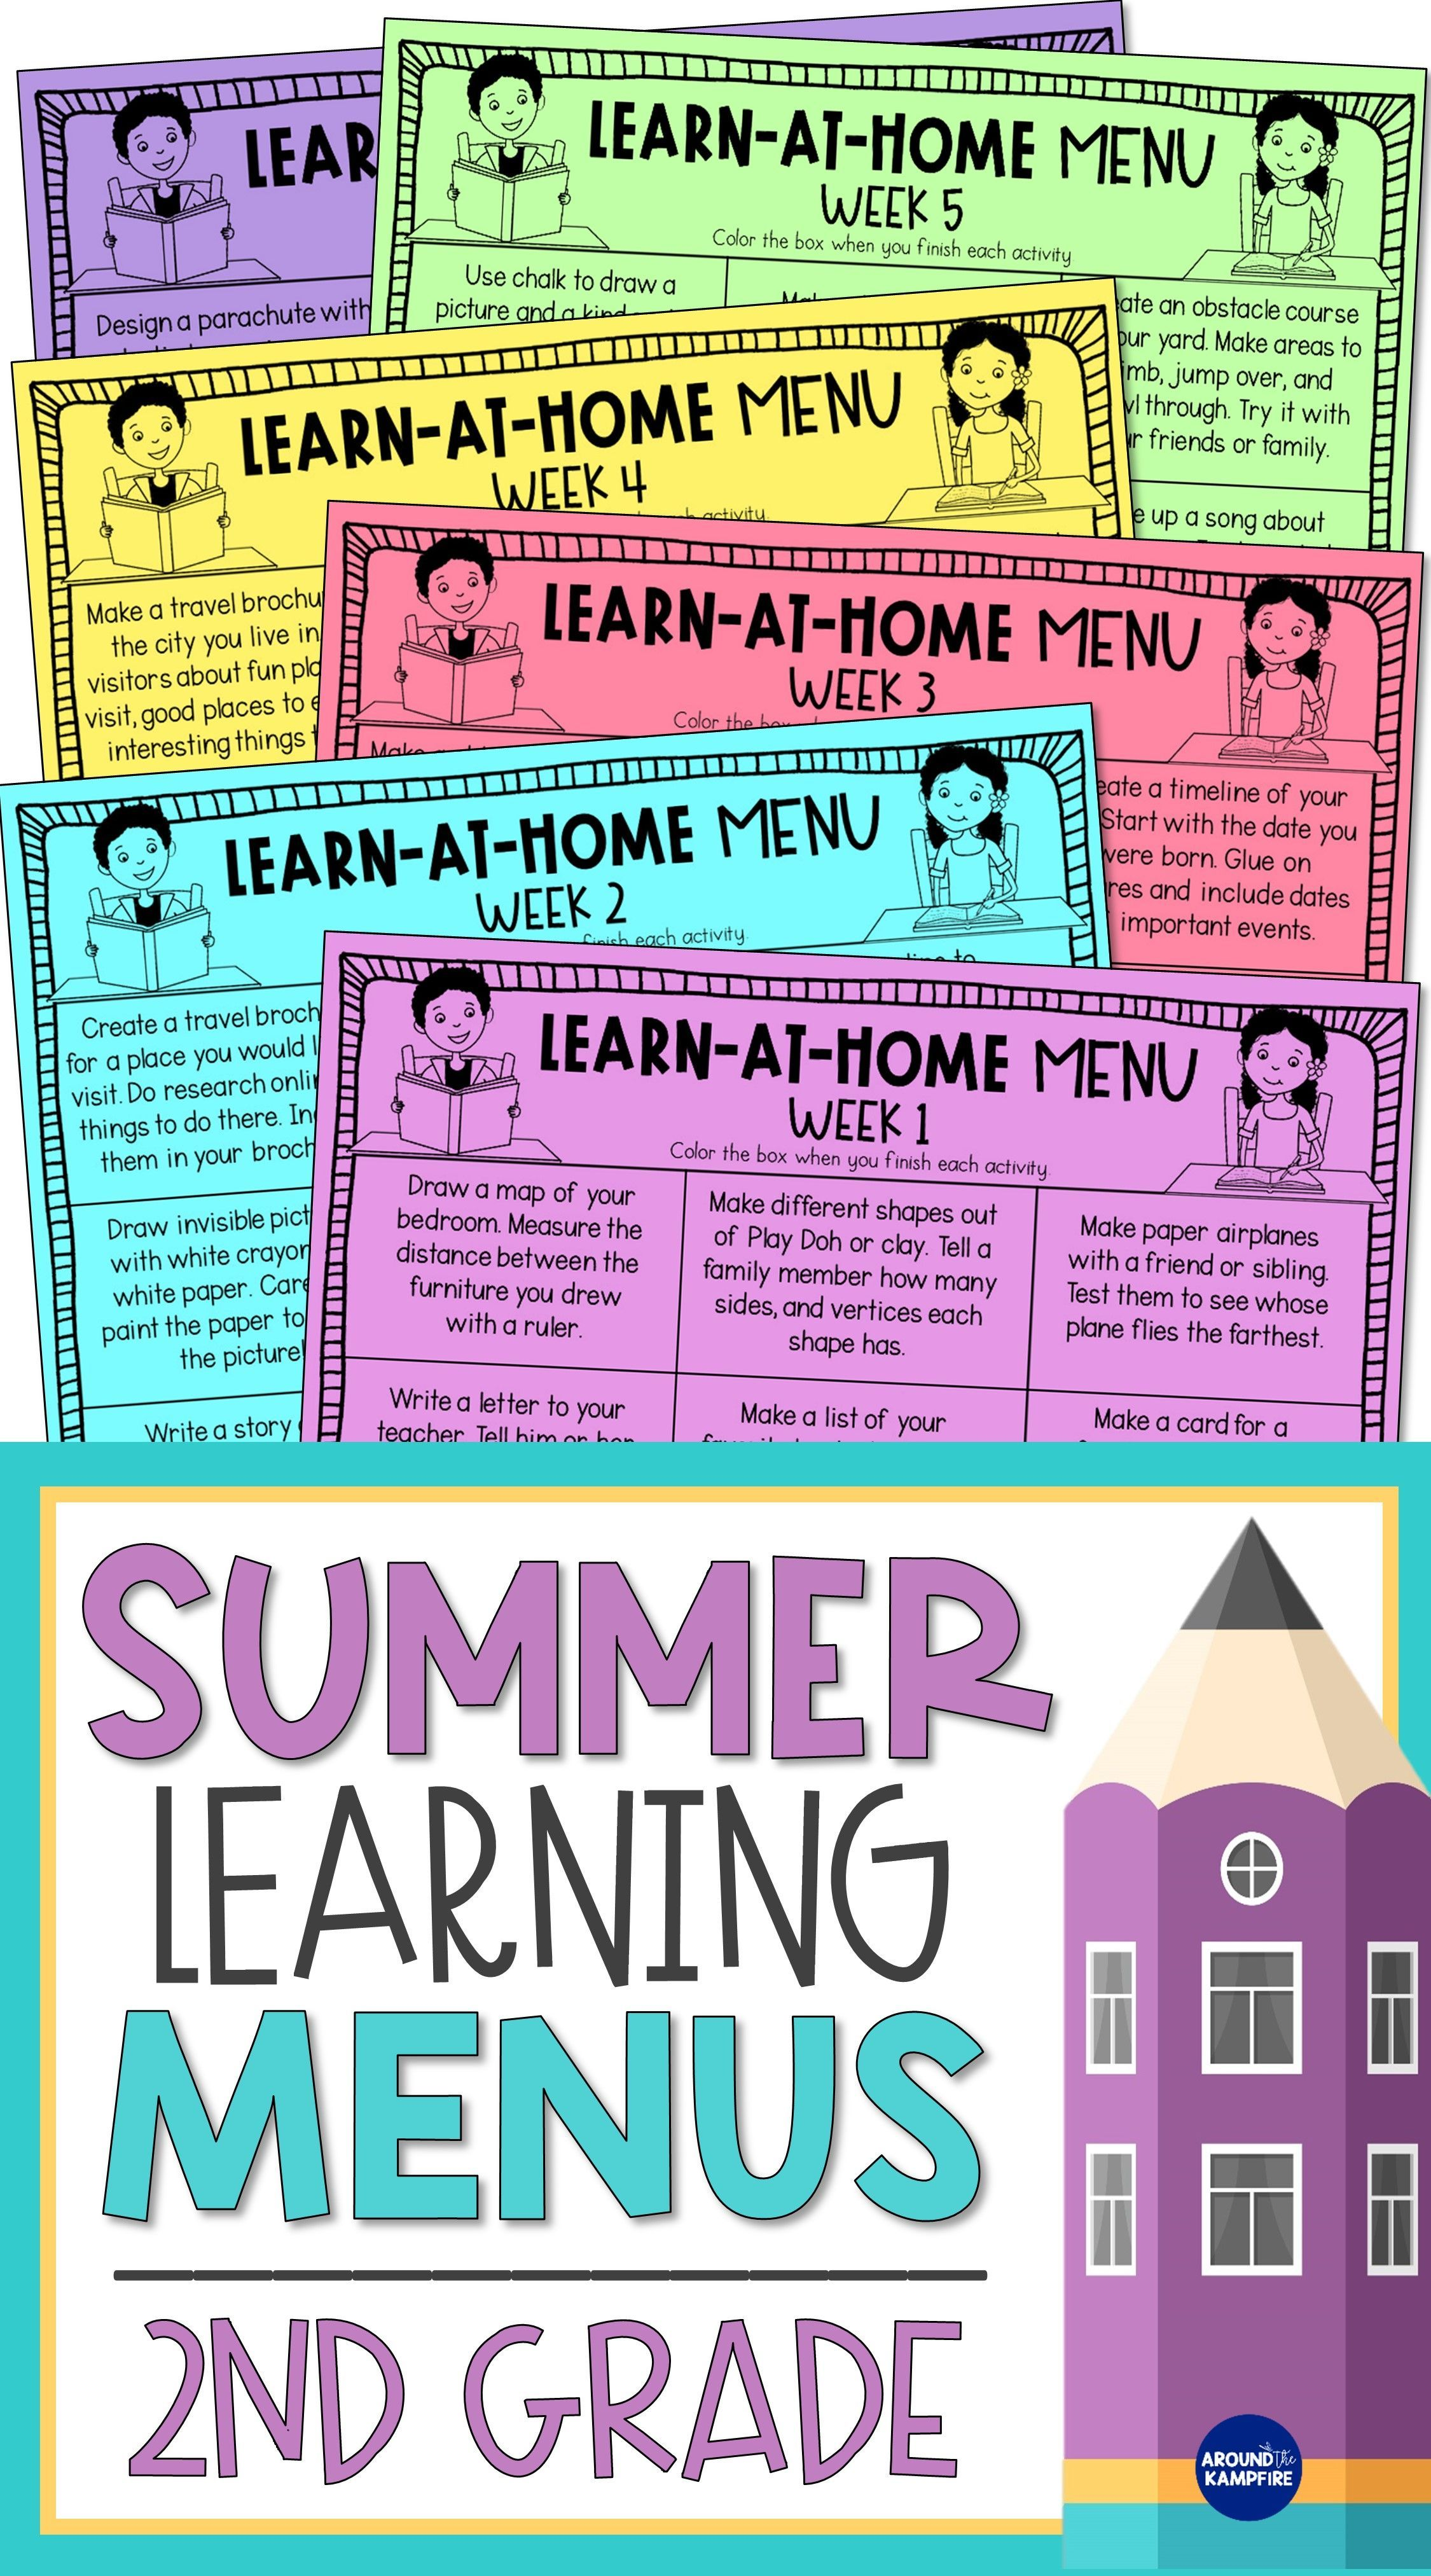 2nd Grade Summer Review Practice Activities In 2020 Summer Learning Activities Letter To Parents Summer Learning